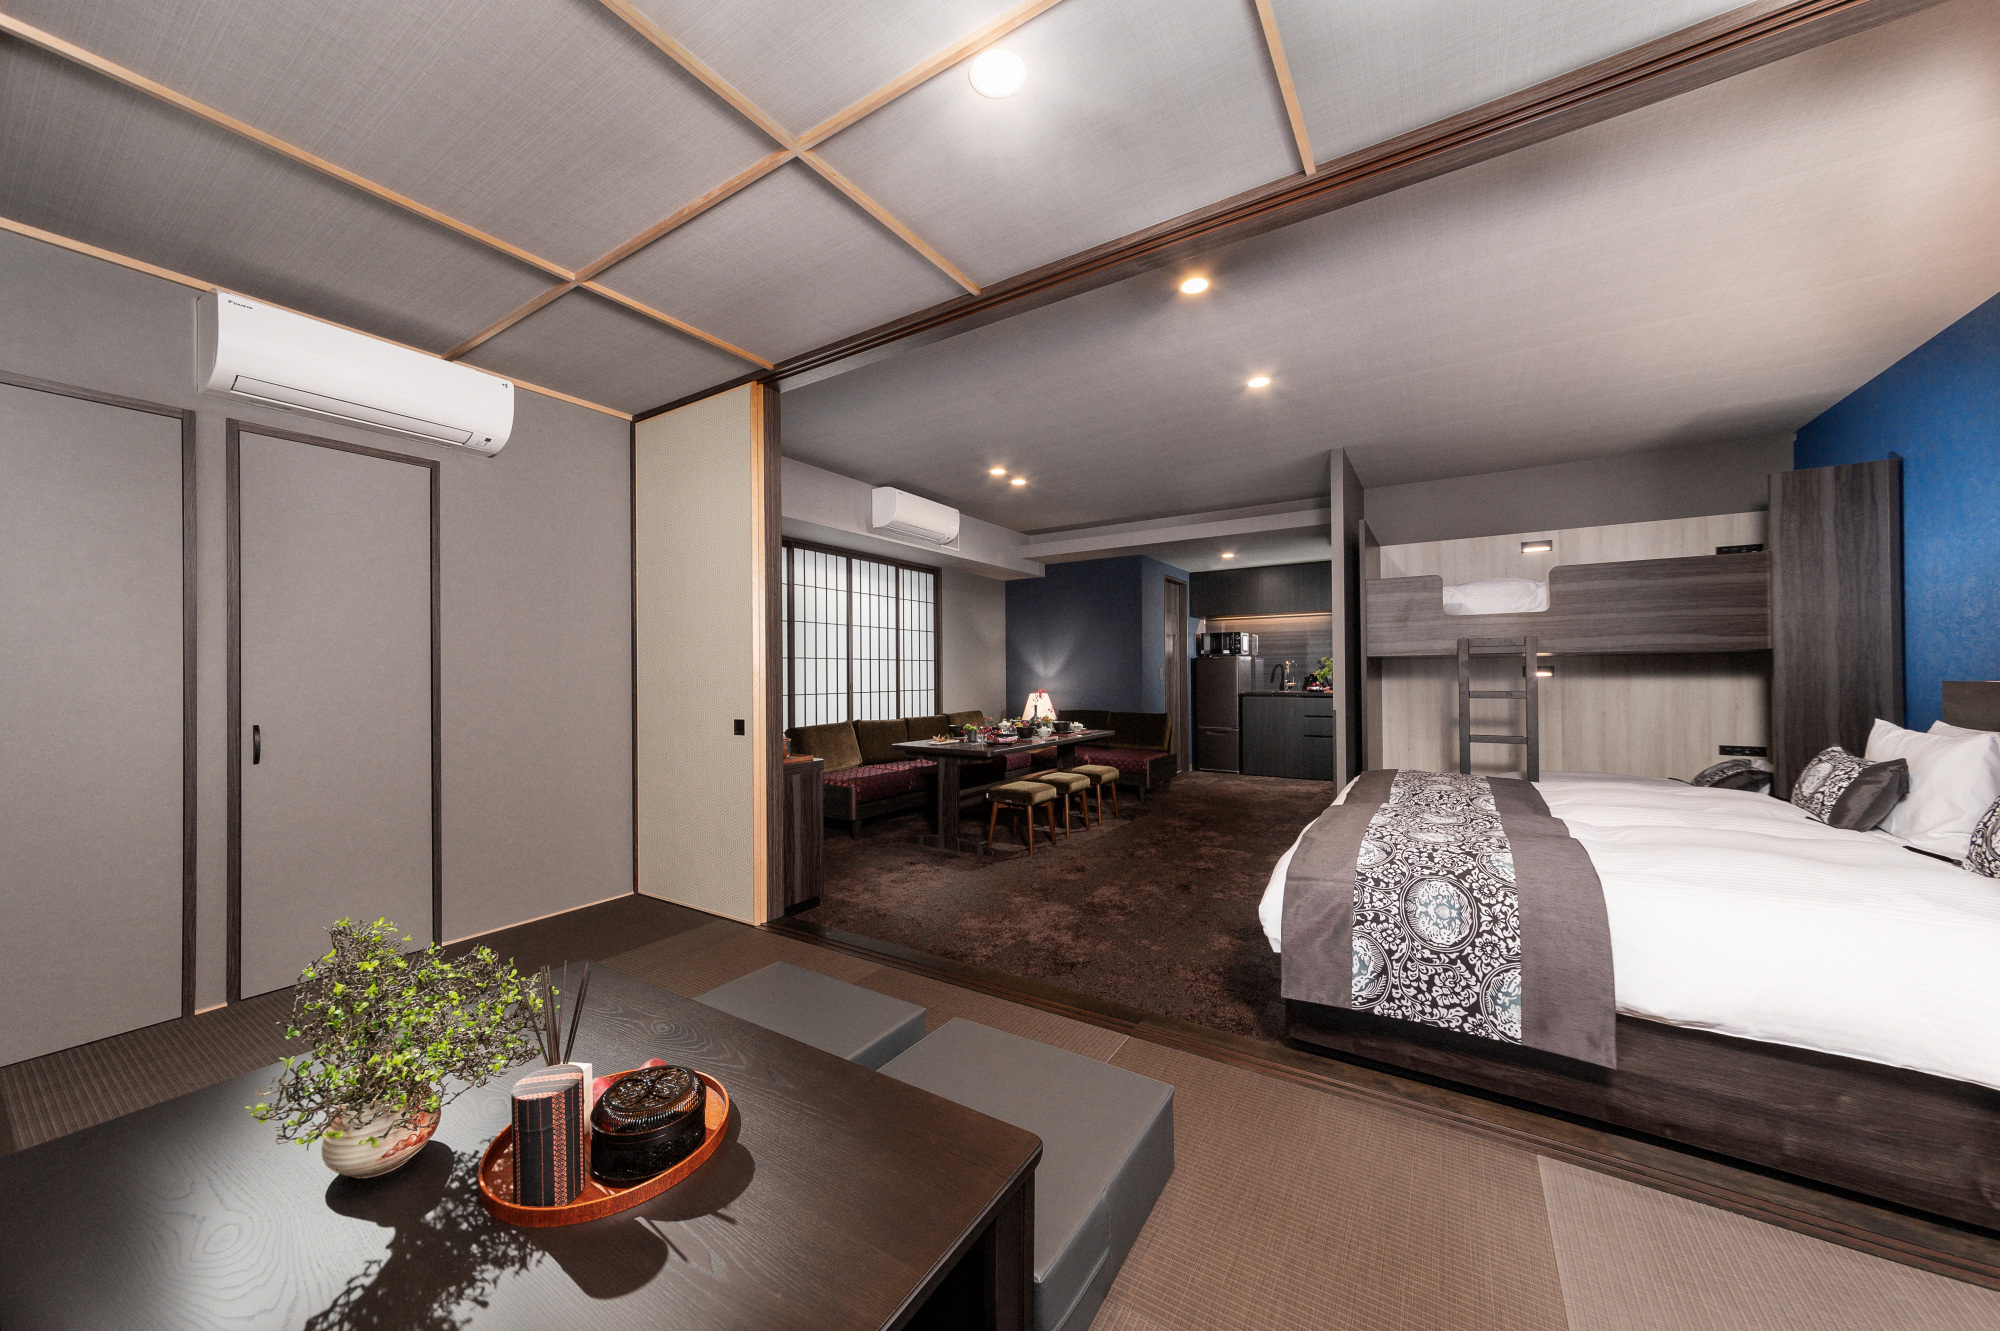 APARTMENT HOTEL MIMARU, Featuring Modern Japonisme-style Guest Rooms, Opens  in Tokyo's Ginza Area in November | Business Wire